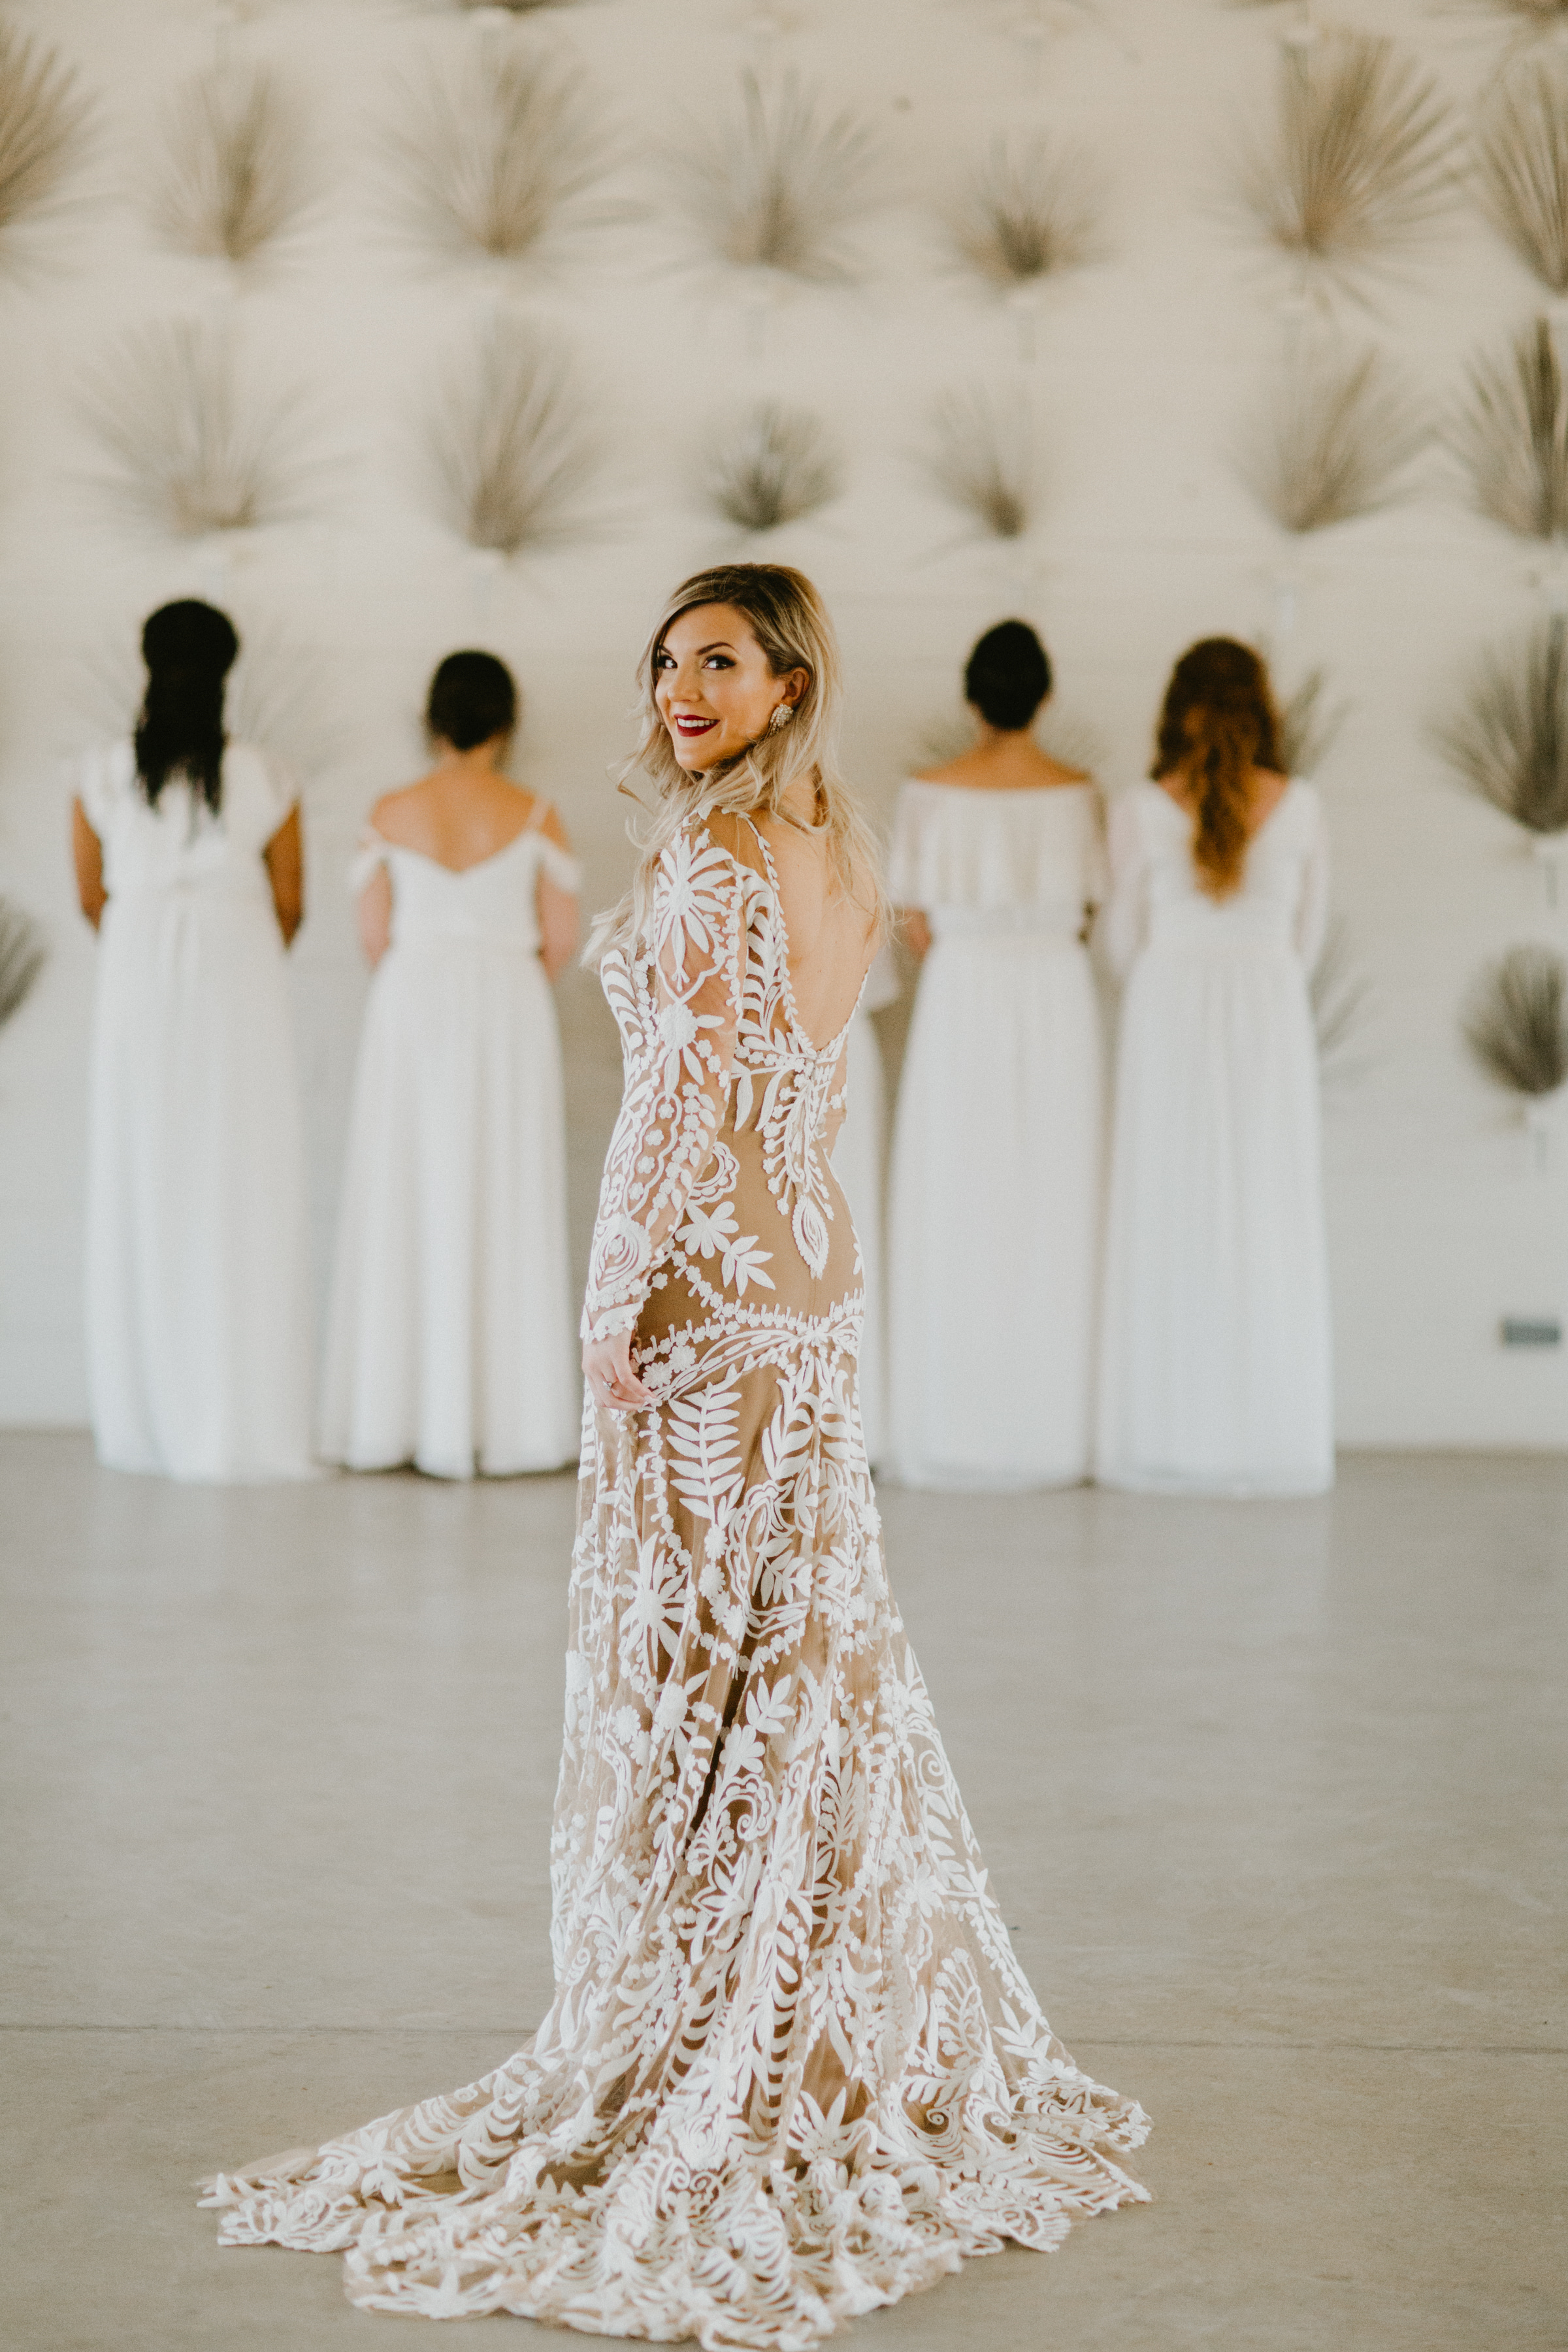 First look with bridesmaids wedding day austin mismatched bridesmaid dress inspiration + destination planner coordinator epoch co + photographer century tree prospect house